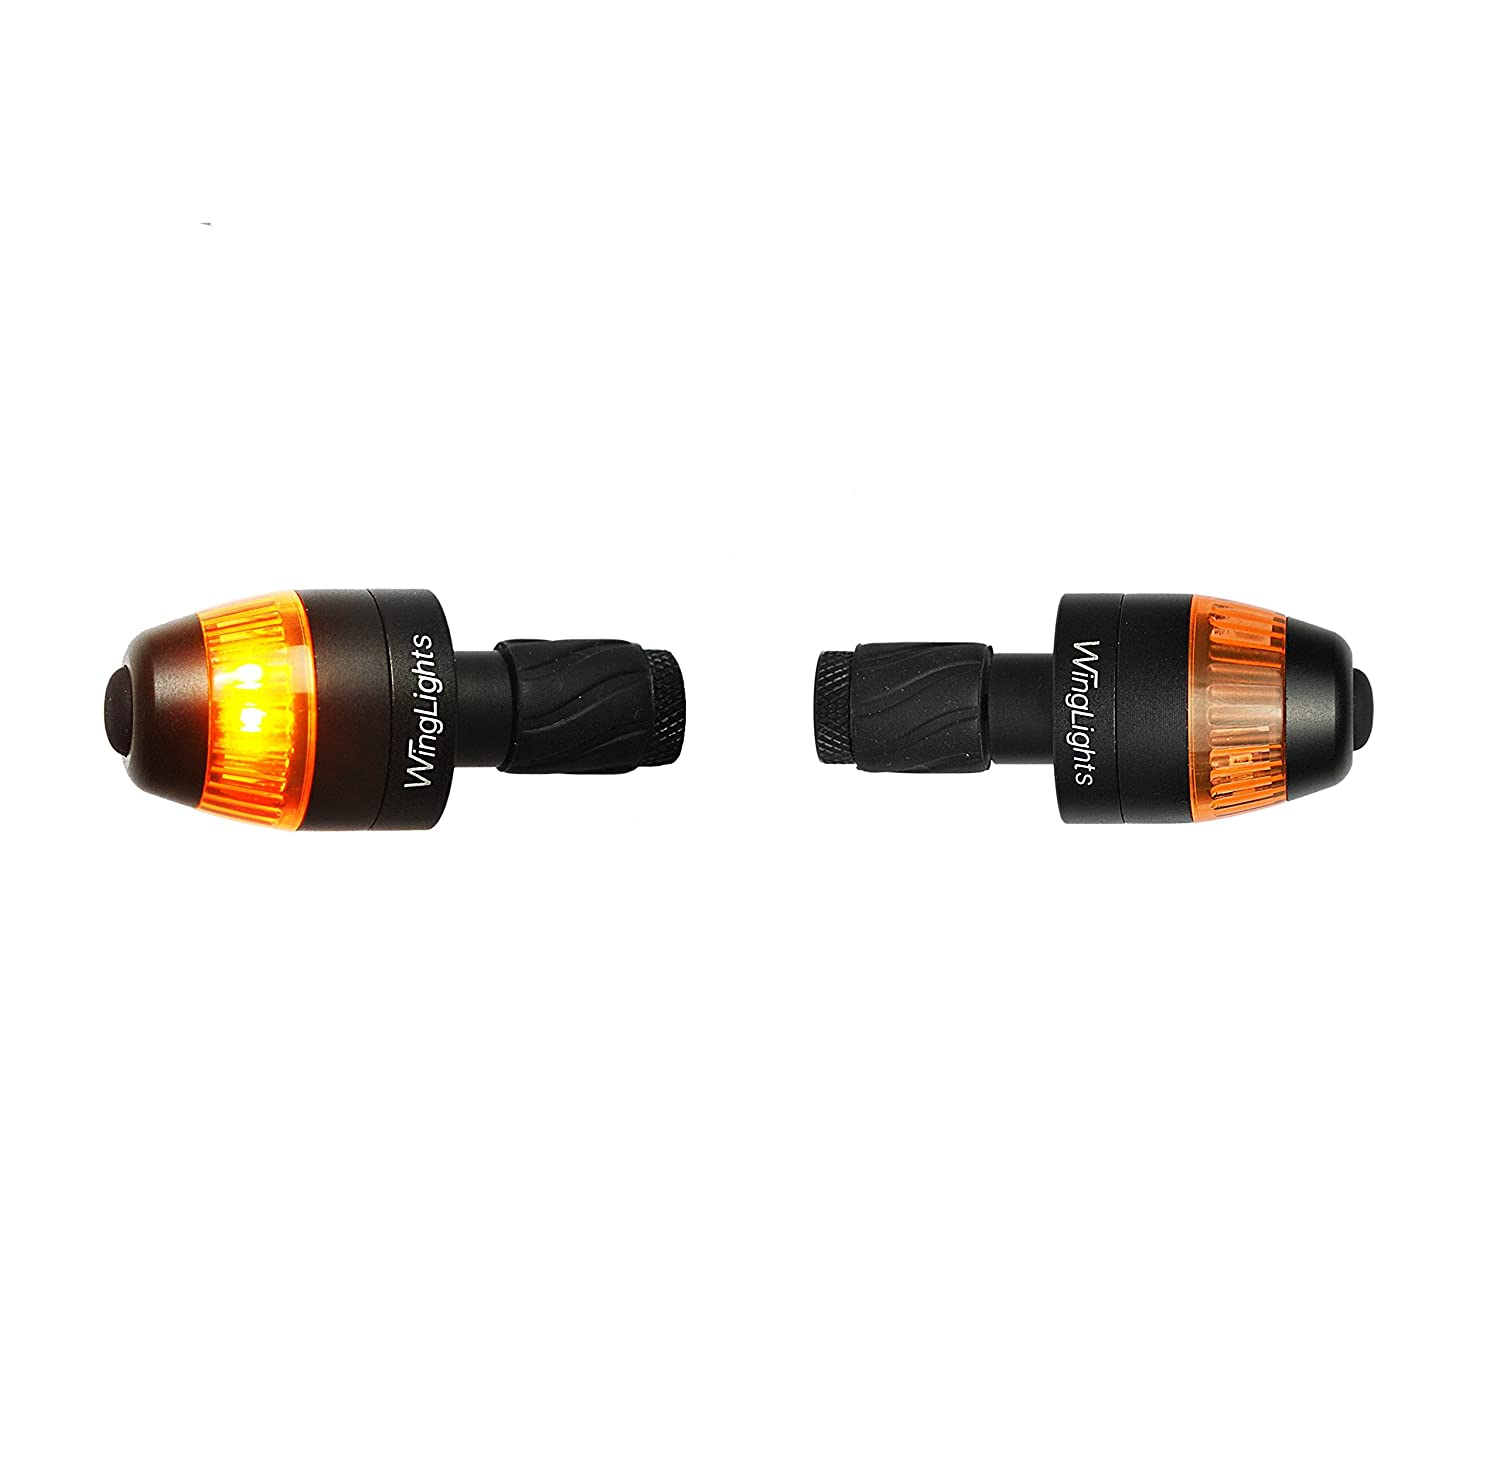 CYCL WingLights Mag V 3.0 – Bicycle Turning Signals Blinkers for Bike